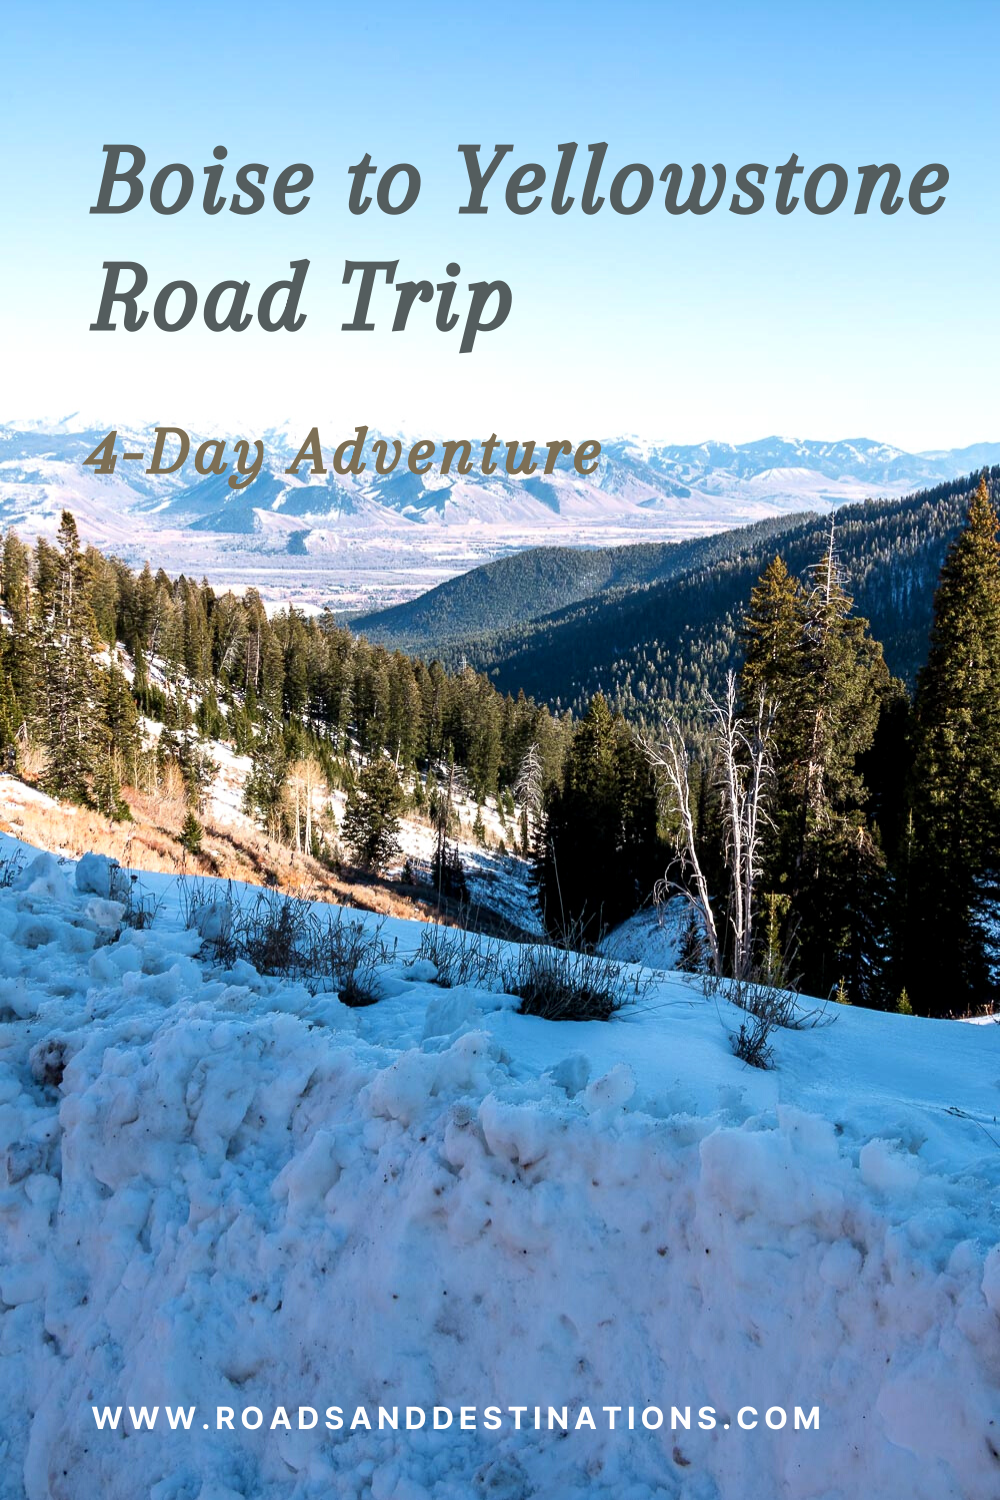 Boise to Yellowstone Road Trip - Roads and Destinations, roadsanddestinations.com